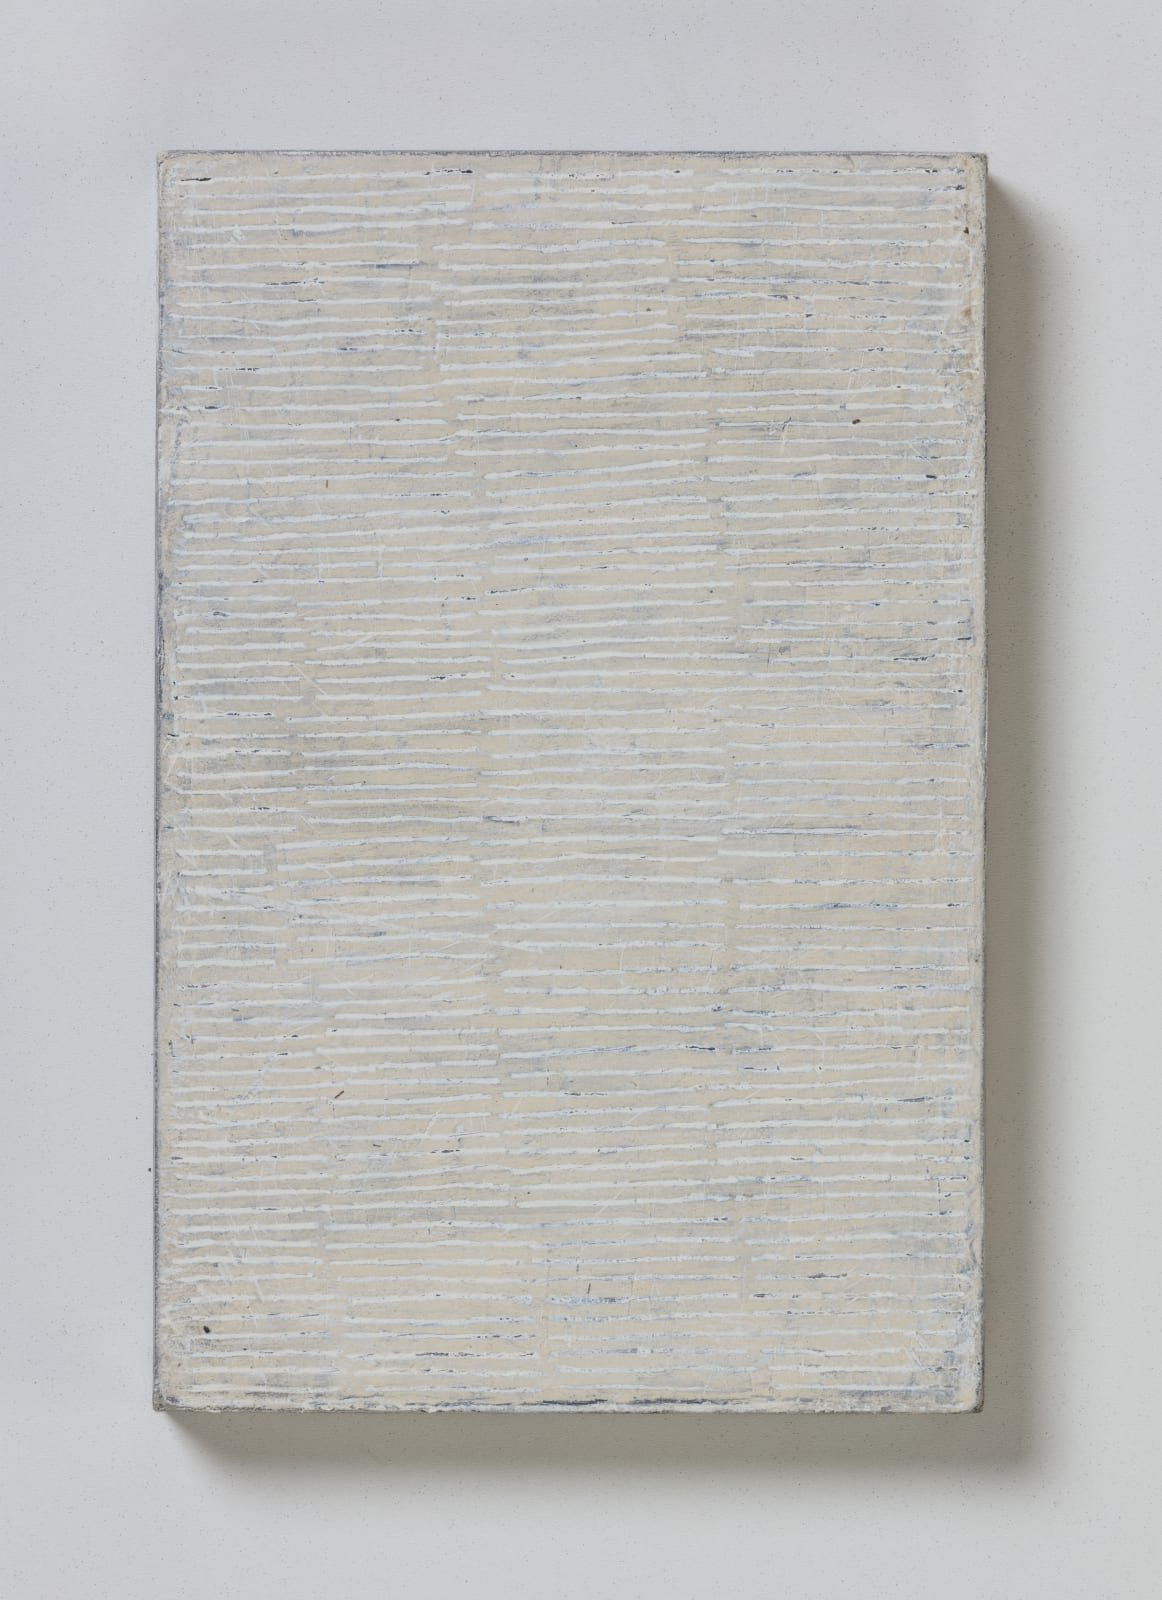 No.3, from flume series, 2020 oil on paper on wood 20.5 x 13.5 cm / 8 x 5.3 in